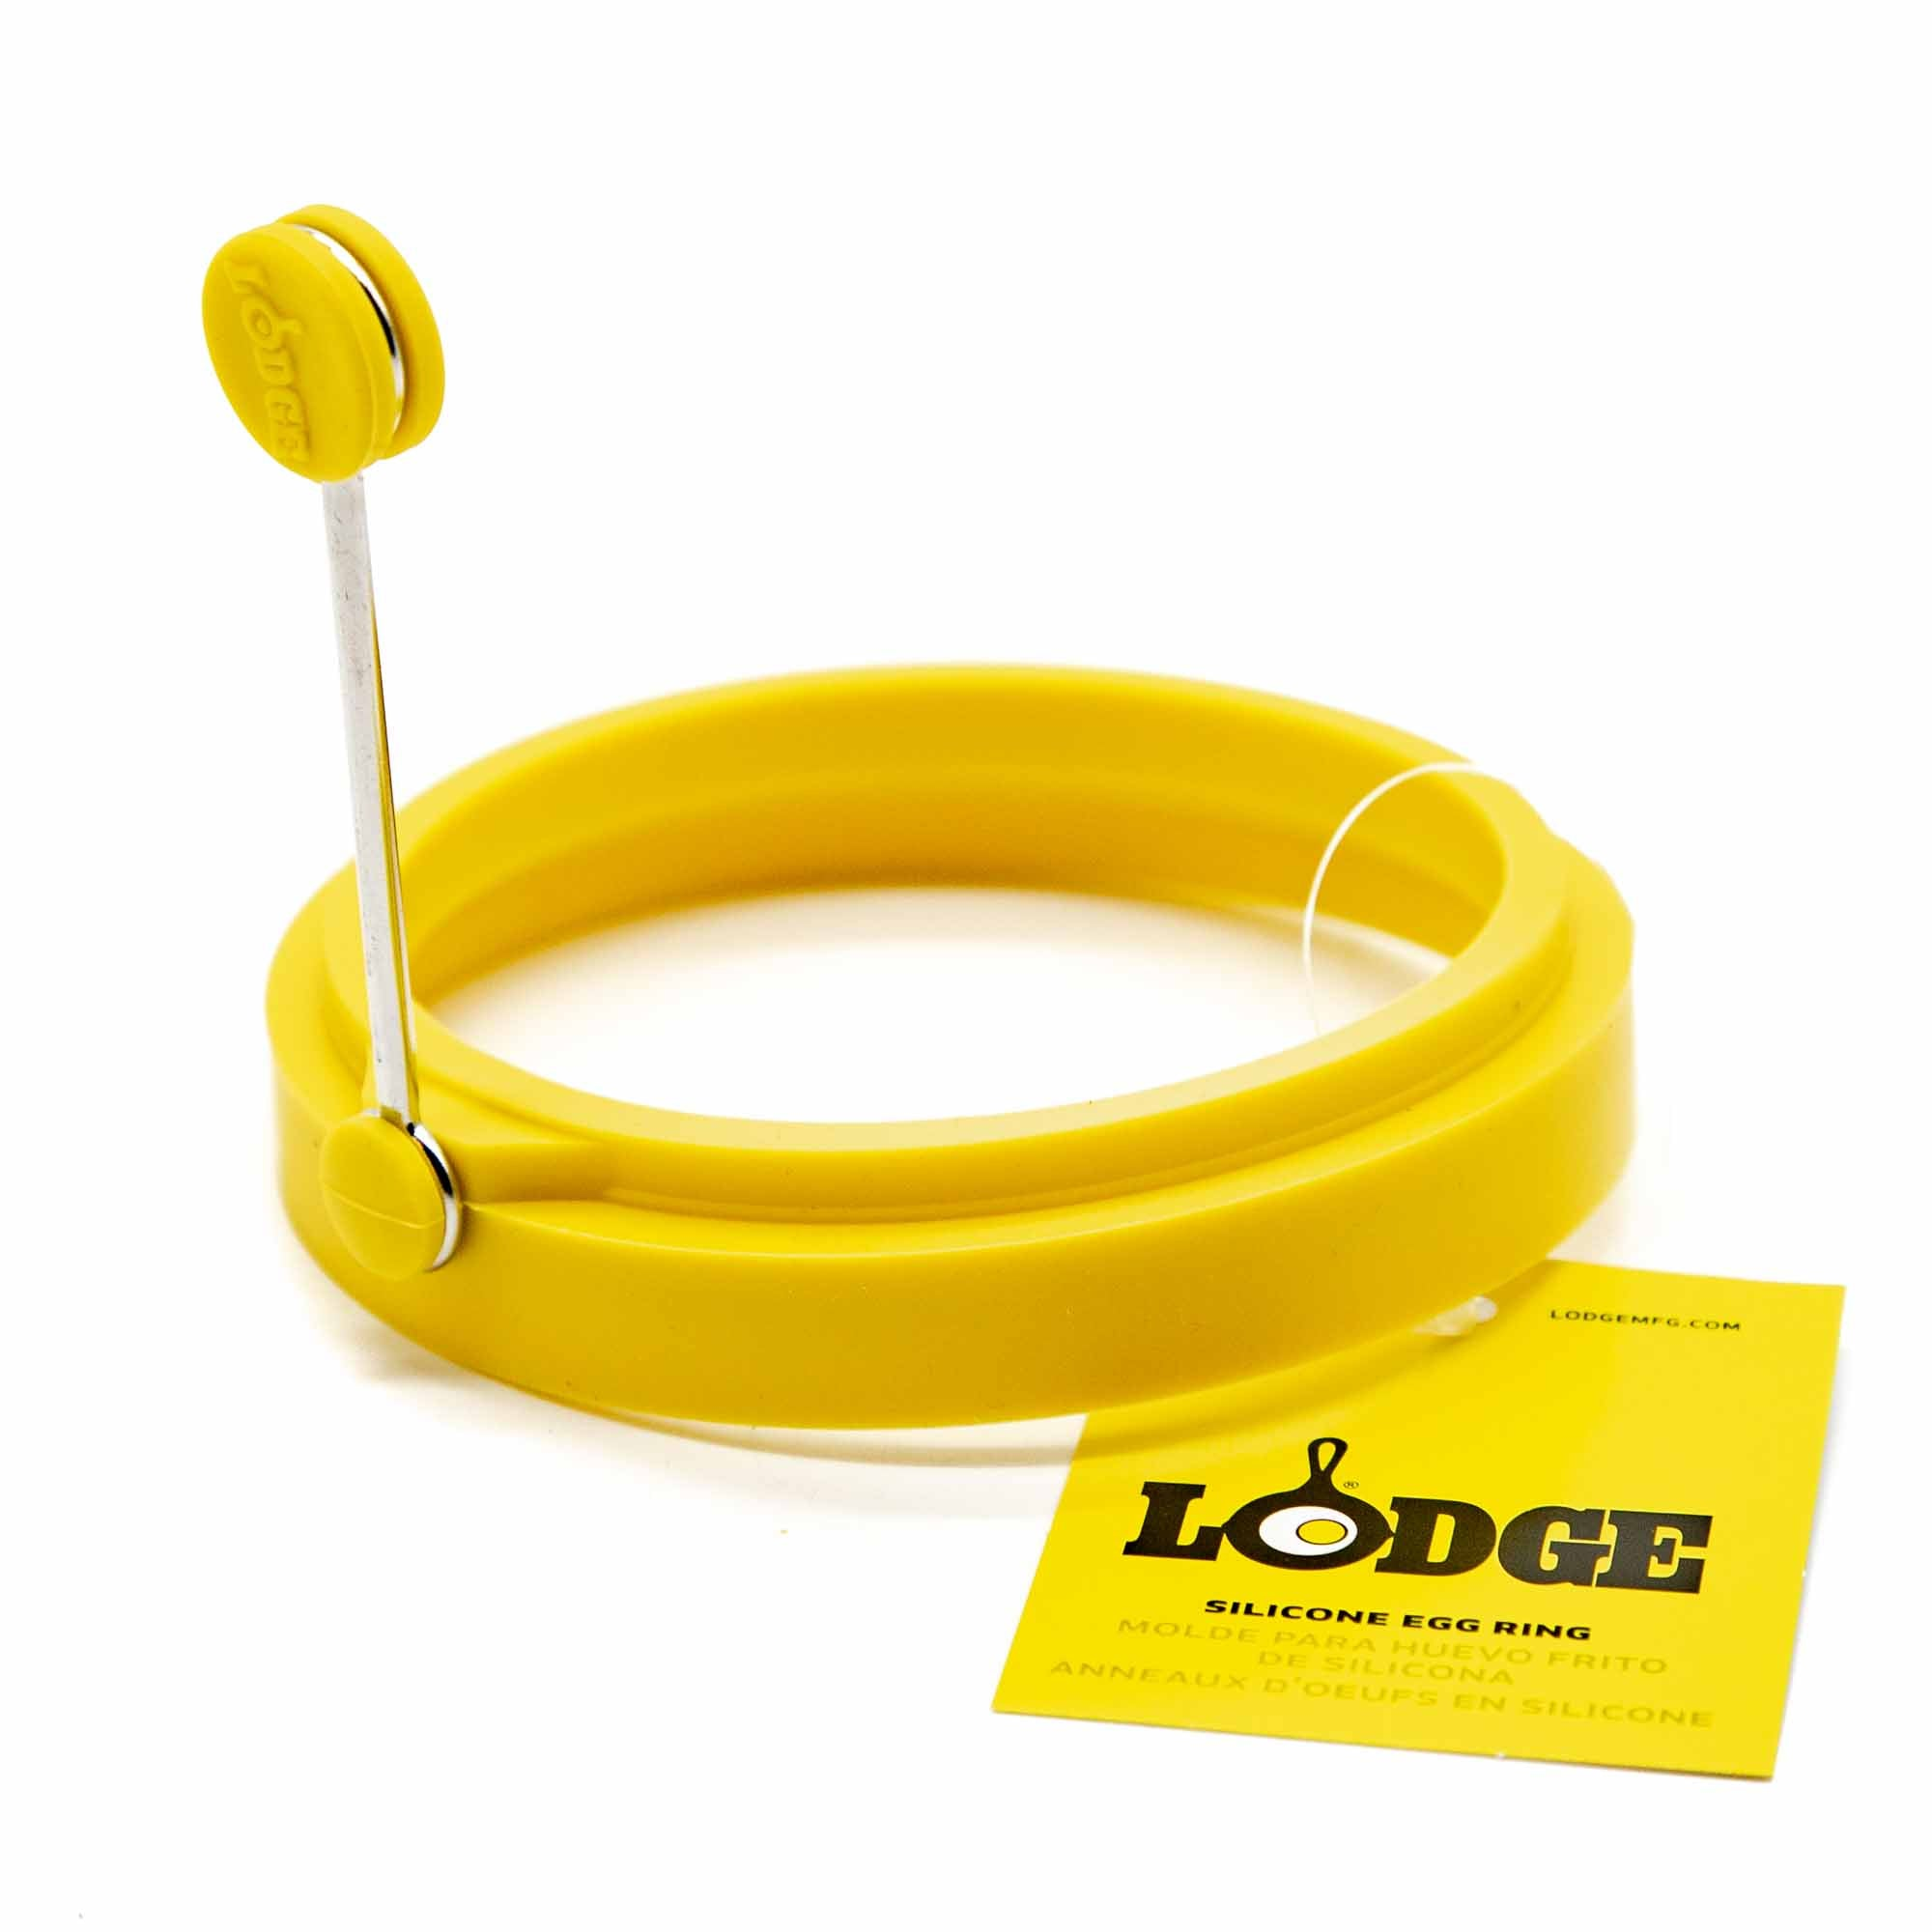 Lodge Silicone Egg Ring, Yellow - Mortise And Tenon